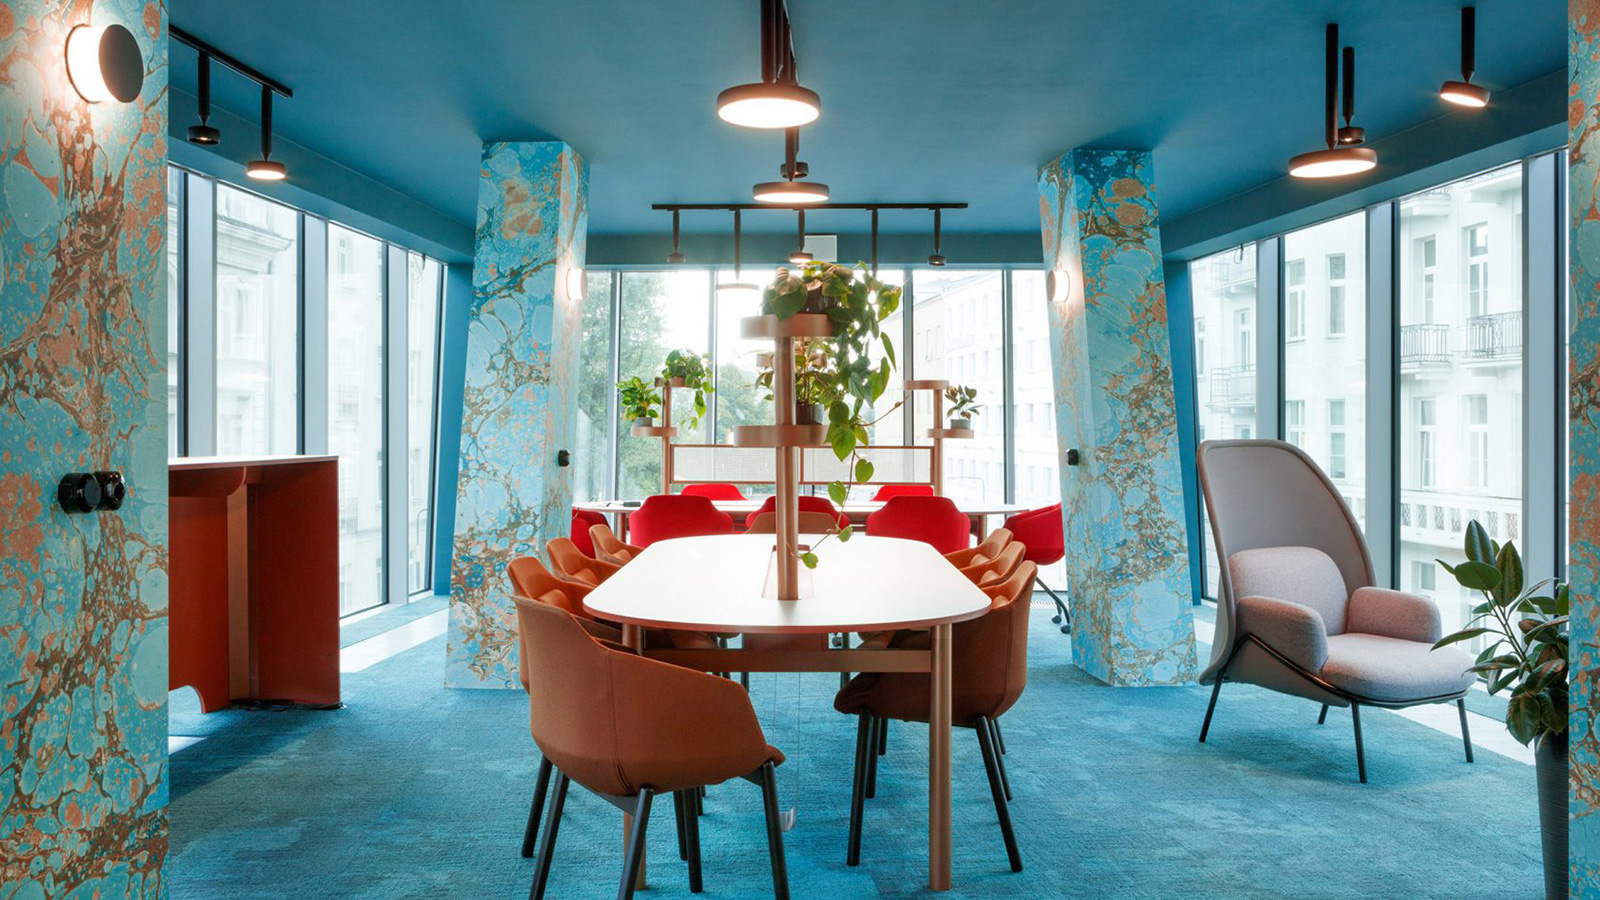 Move over millennial pink... Warsaw's Nest coworking space is drenched in aqua blue